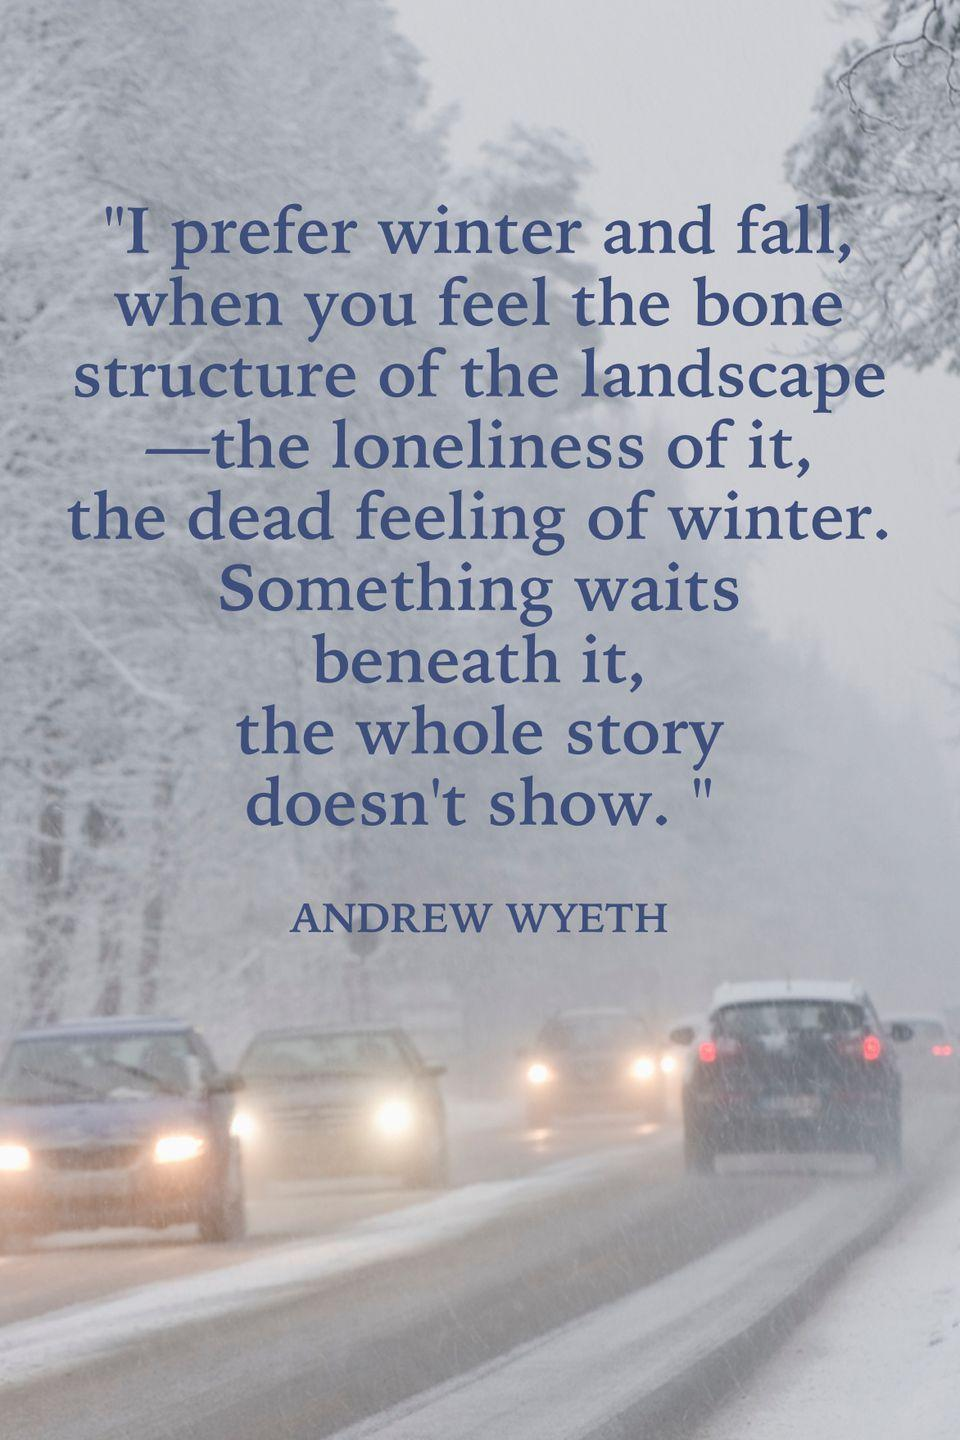 "<p>""I prefer winter and fall, when you feel the bone structure of the landscape—the loneliness of it, the dead feeling of winter. Something waits beneath it, the whole story doesn't show.""</p>"